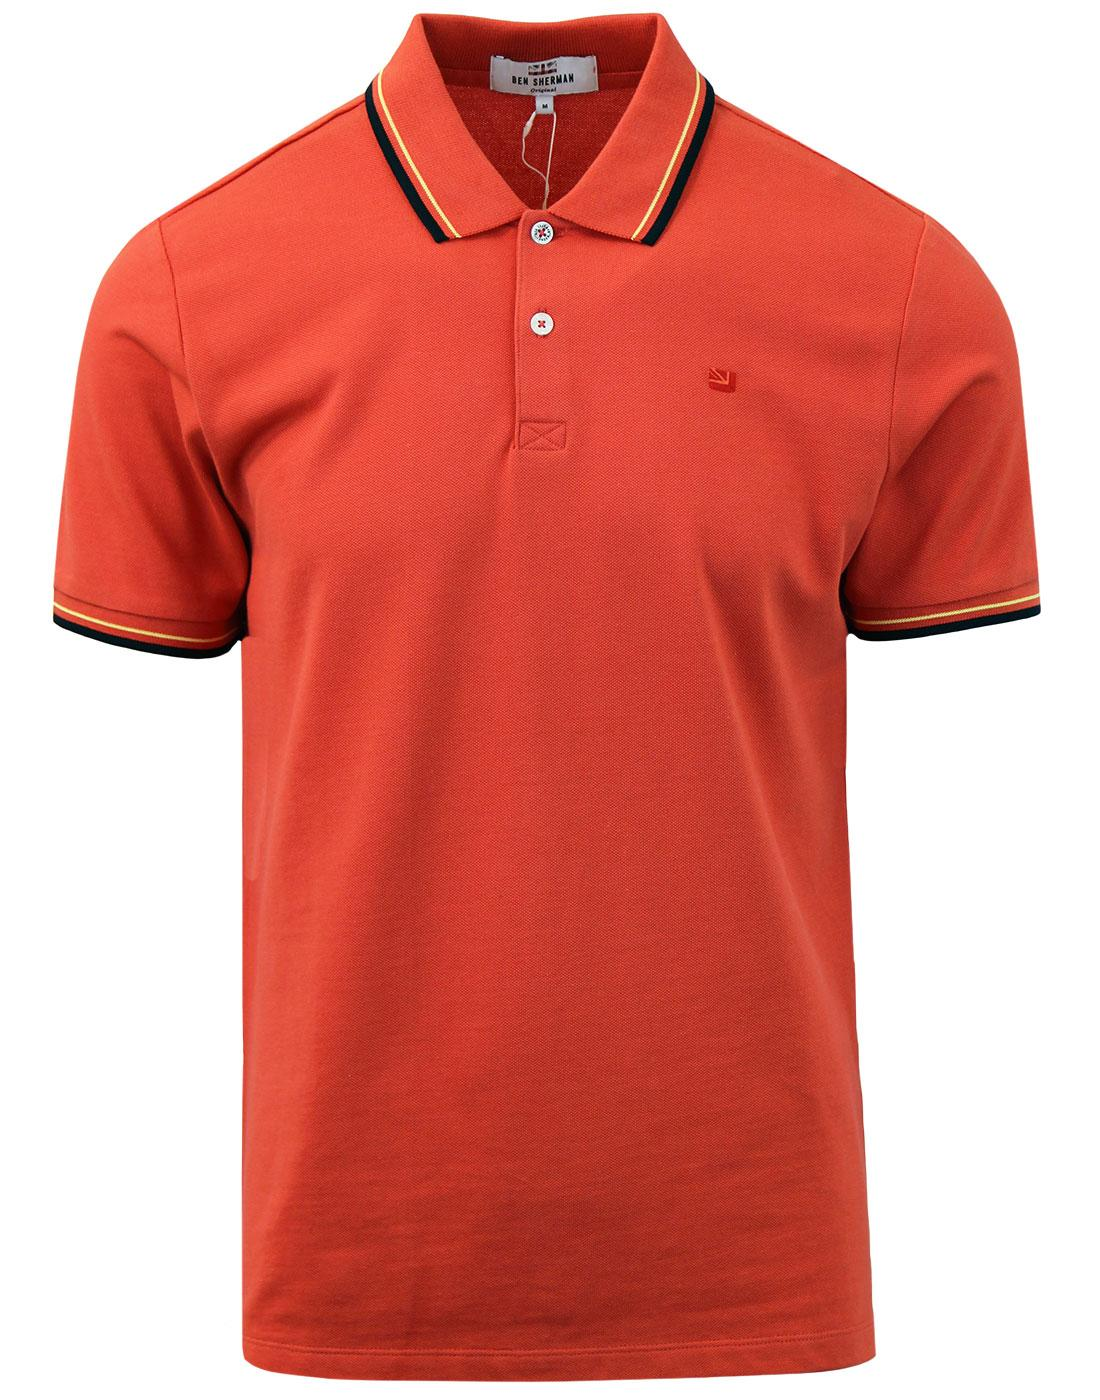 BEN SHERMAN Romford Retro Mod Tipped Polo Top (BO)